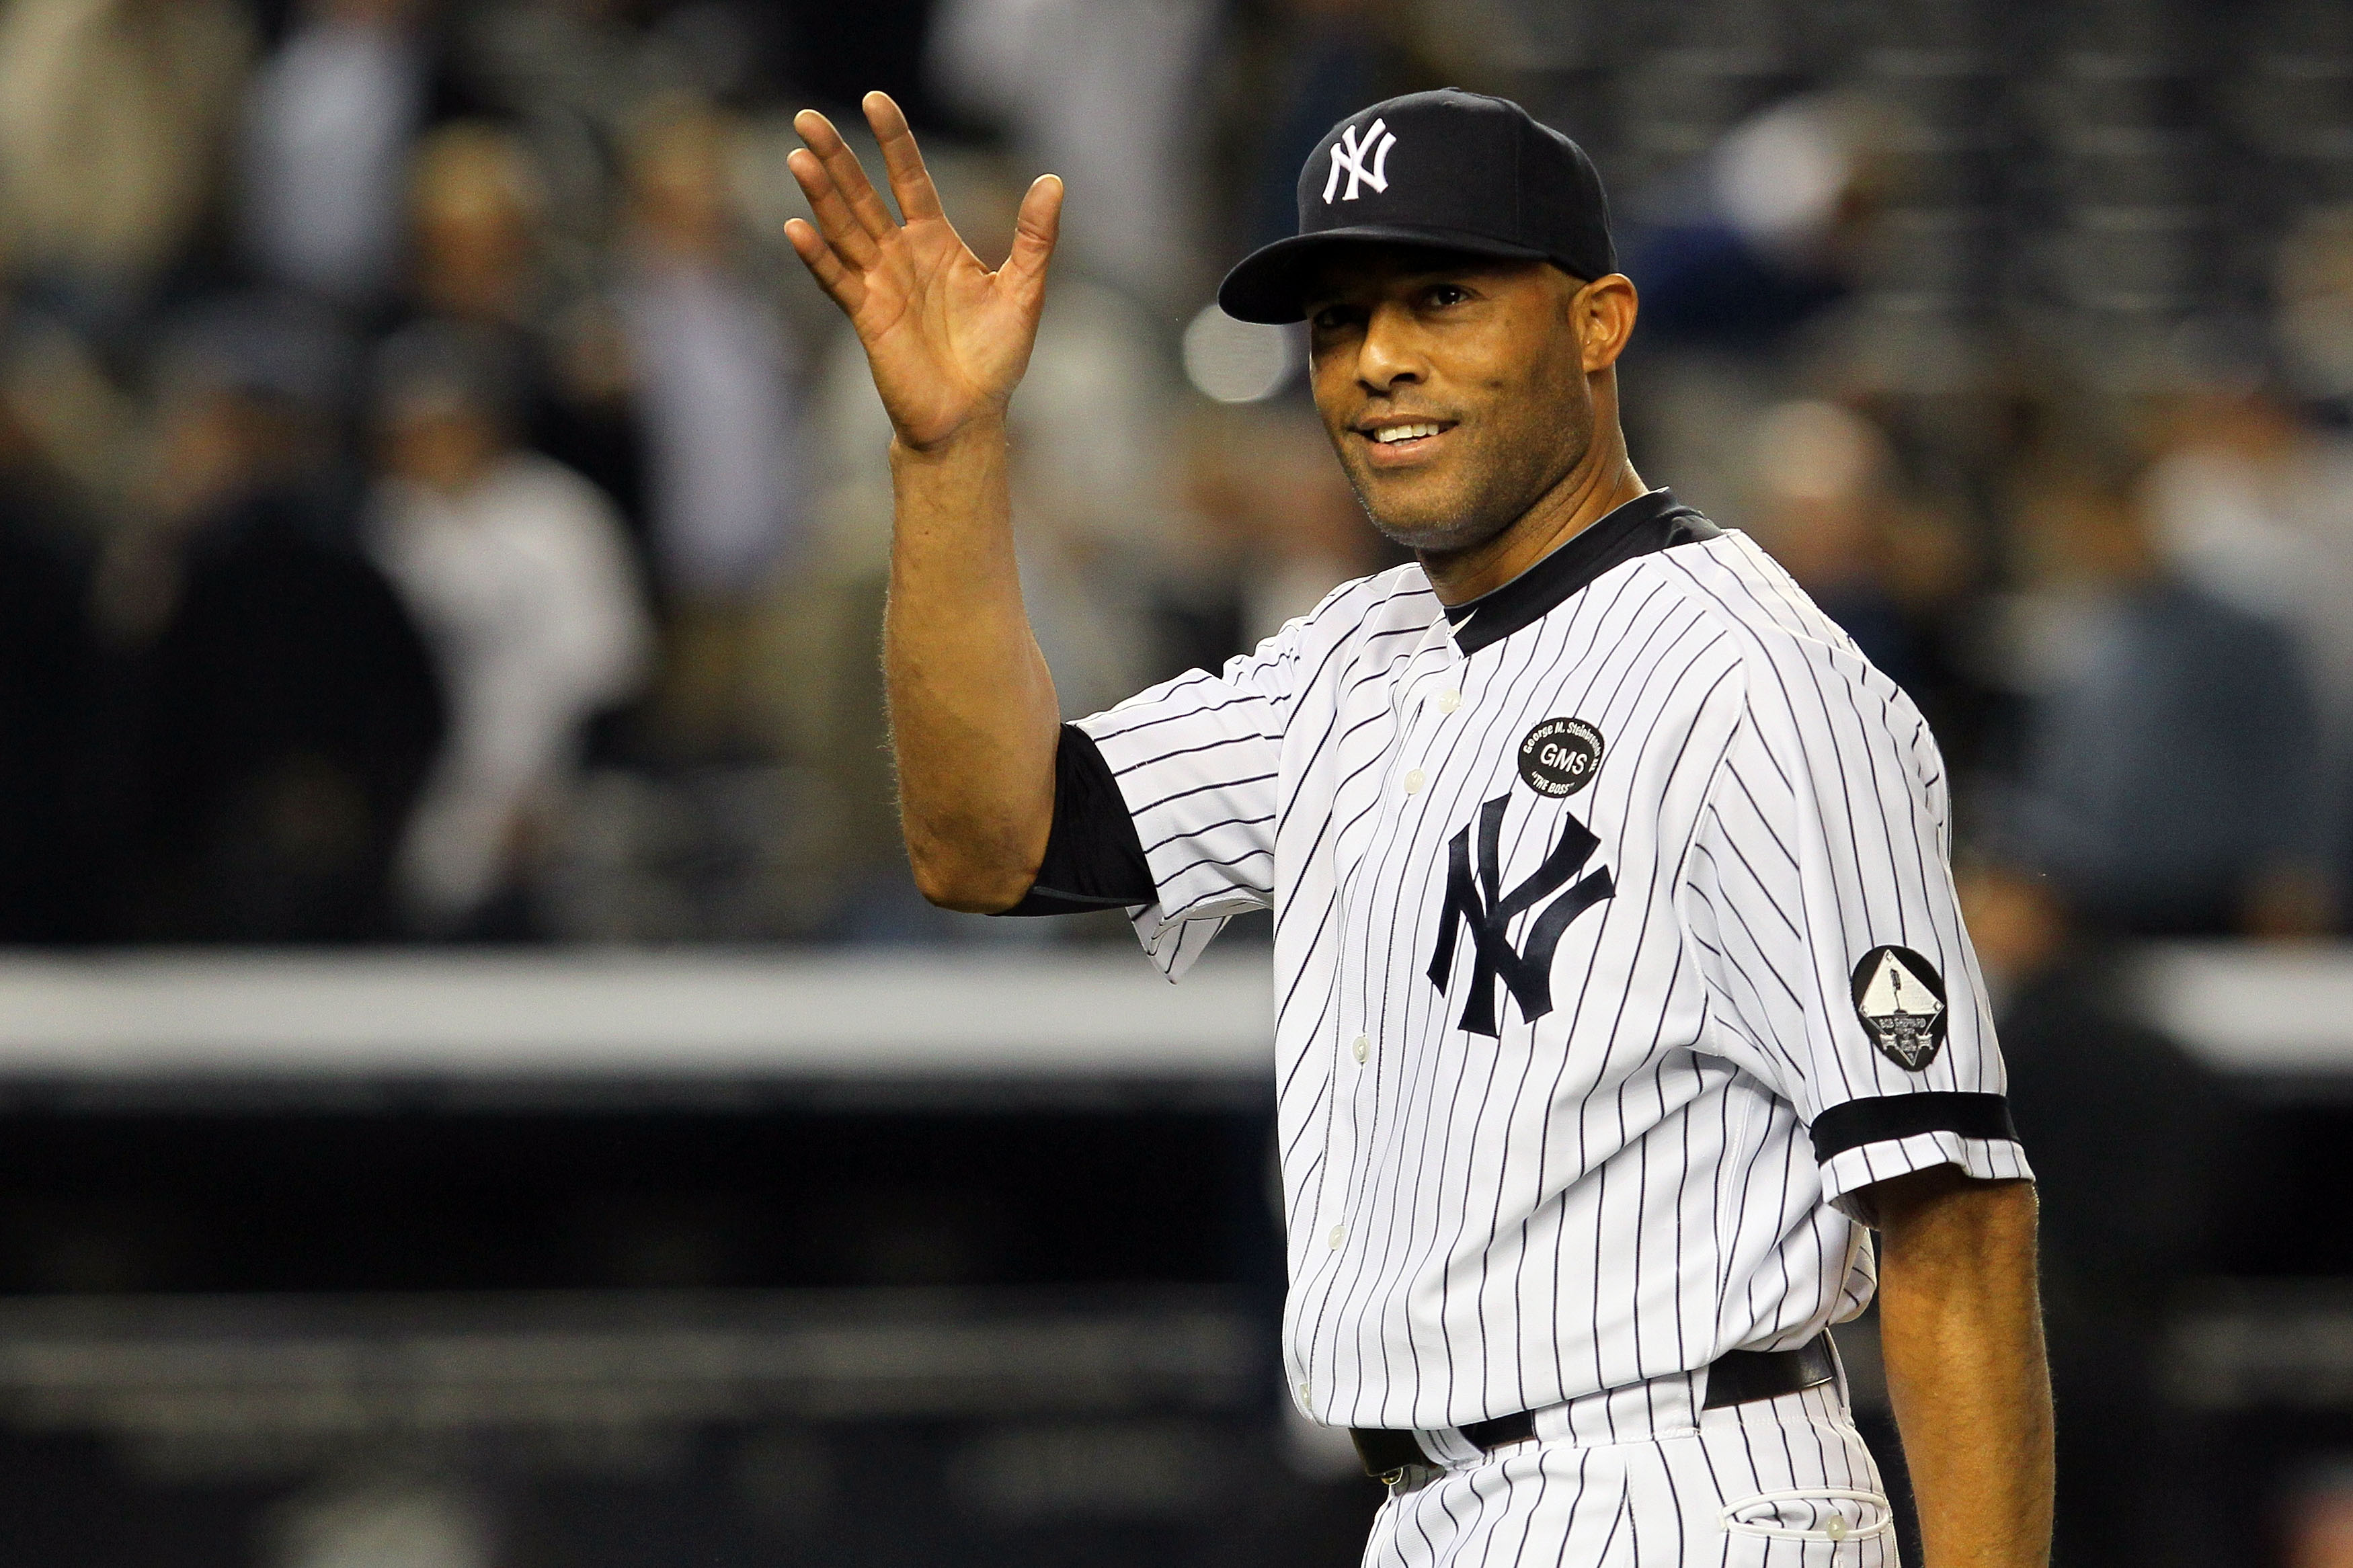 NEW YORK - OCTOBER 20: Mariano Rivera #42 of the New York Yankees celebrates after the Yankees won 7-2 against the Texas Rangers in Game Five of the ALCS during the 2010 MLB Playoffs at Yankee Stadium on October 20, 2010 in the Bronx borough of New York C